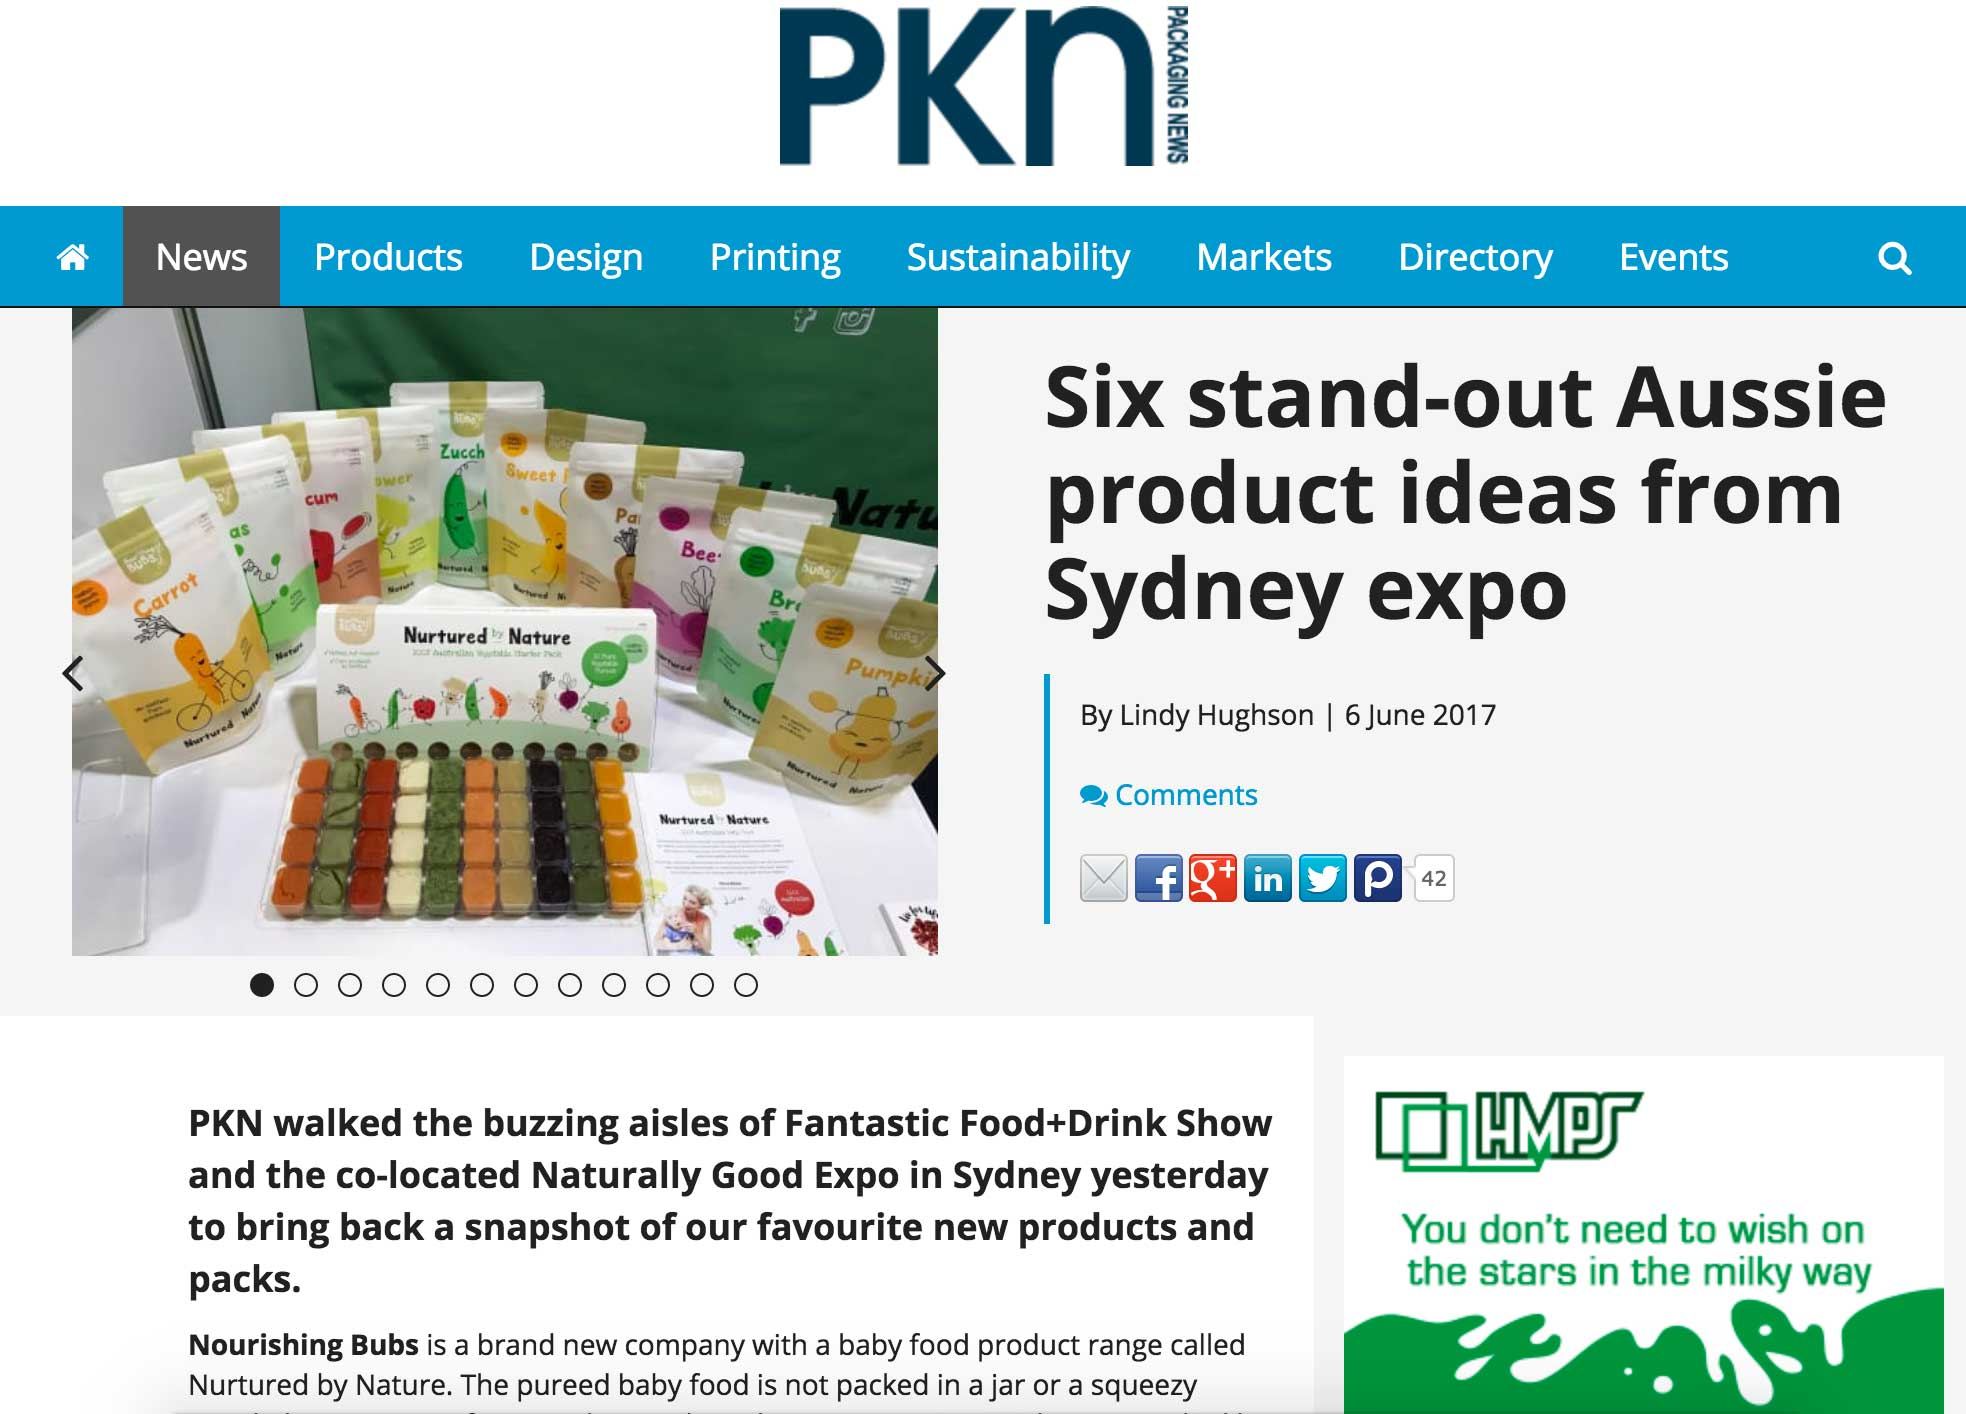 Six stand-out Aussie product ideas from Sydney expo